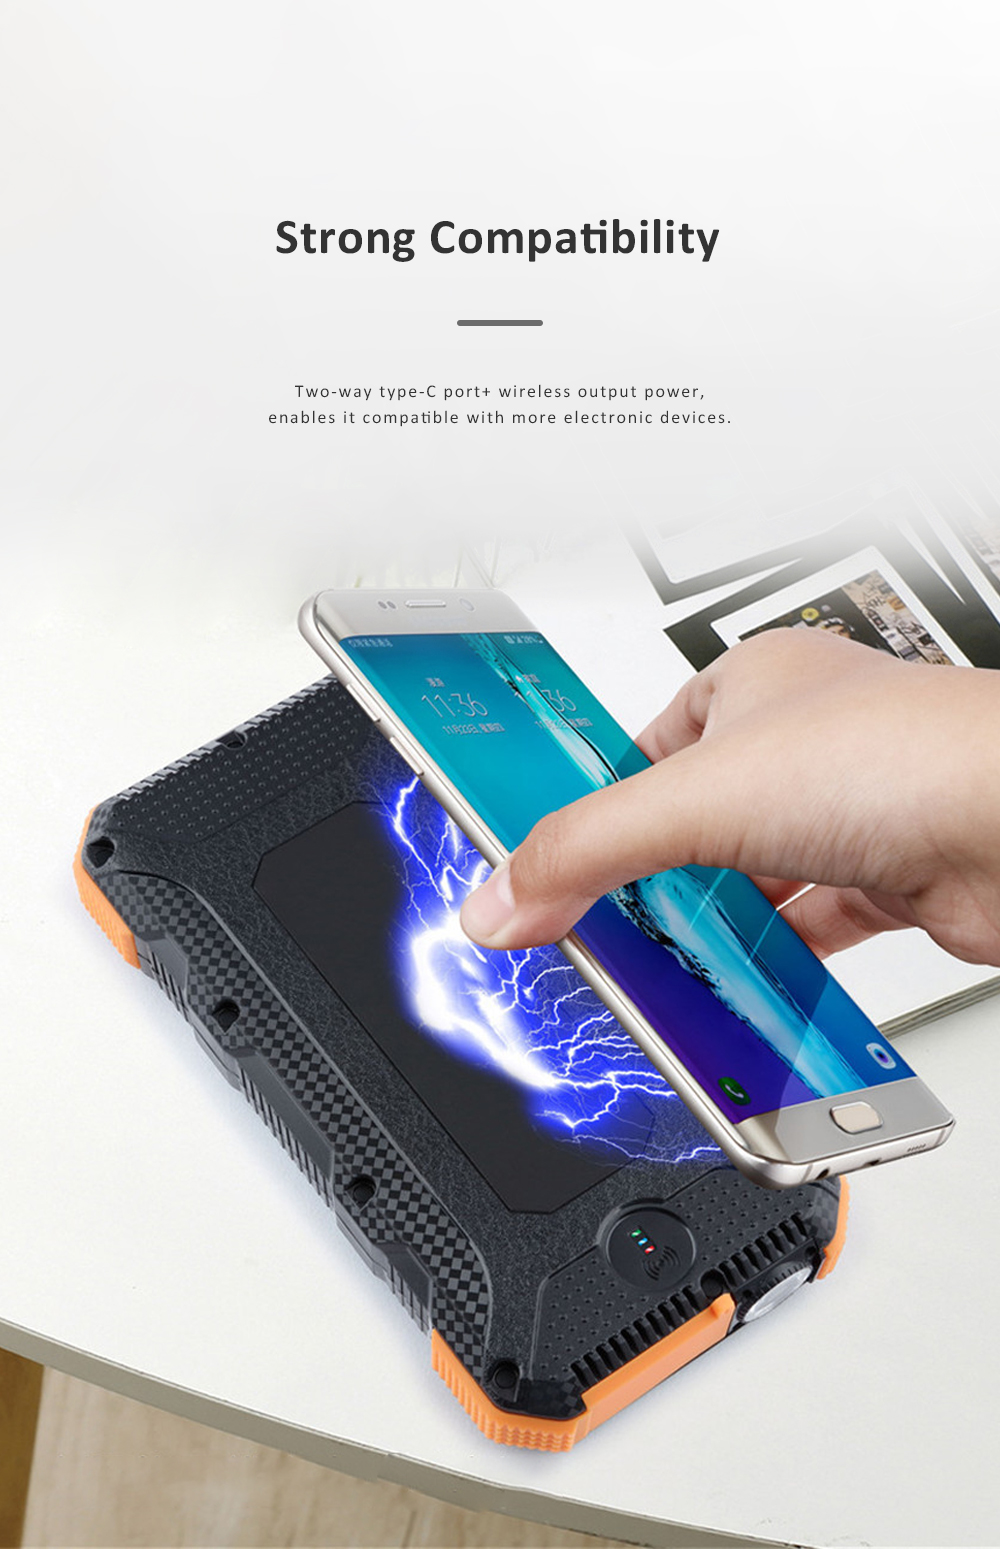 24000mAh Portable Solar Charger Two-way Type-C Power Bank with Flashlight and Metal Hook for Mobile Phone iPad MP3 MP4 5